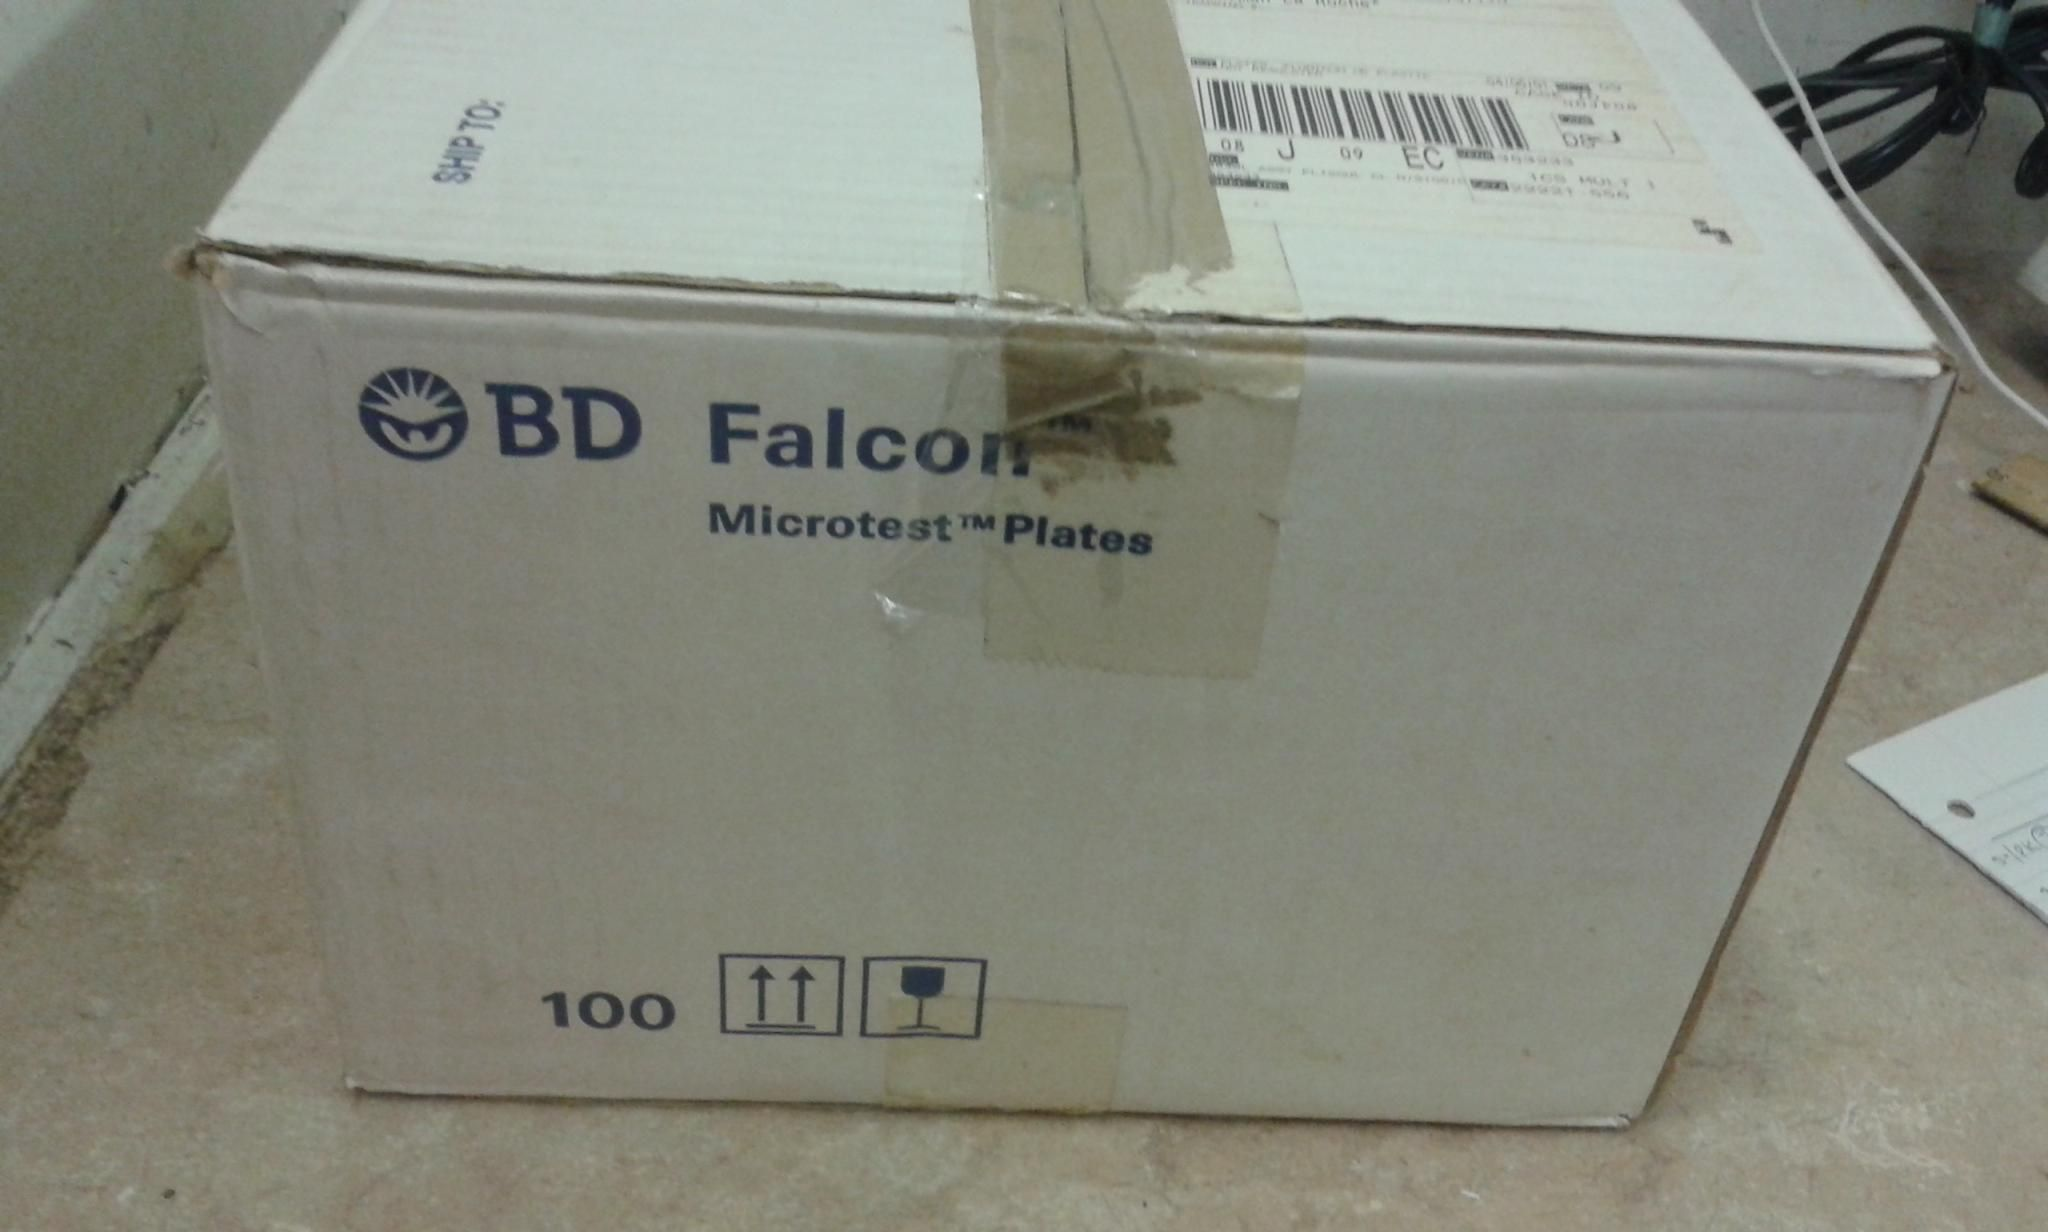 BD Falcon Microtest 384-well .120ul  Assay Plate clear ,standard surface ,